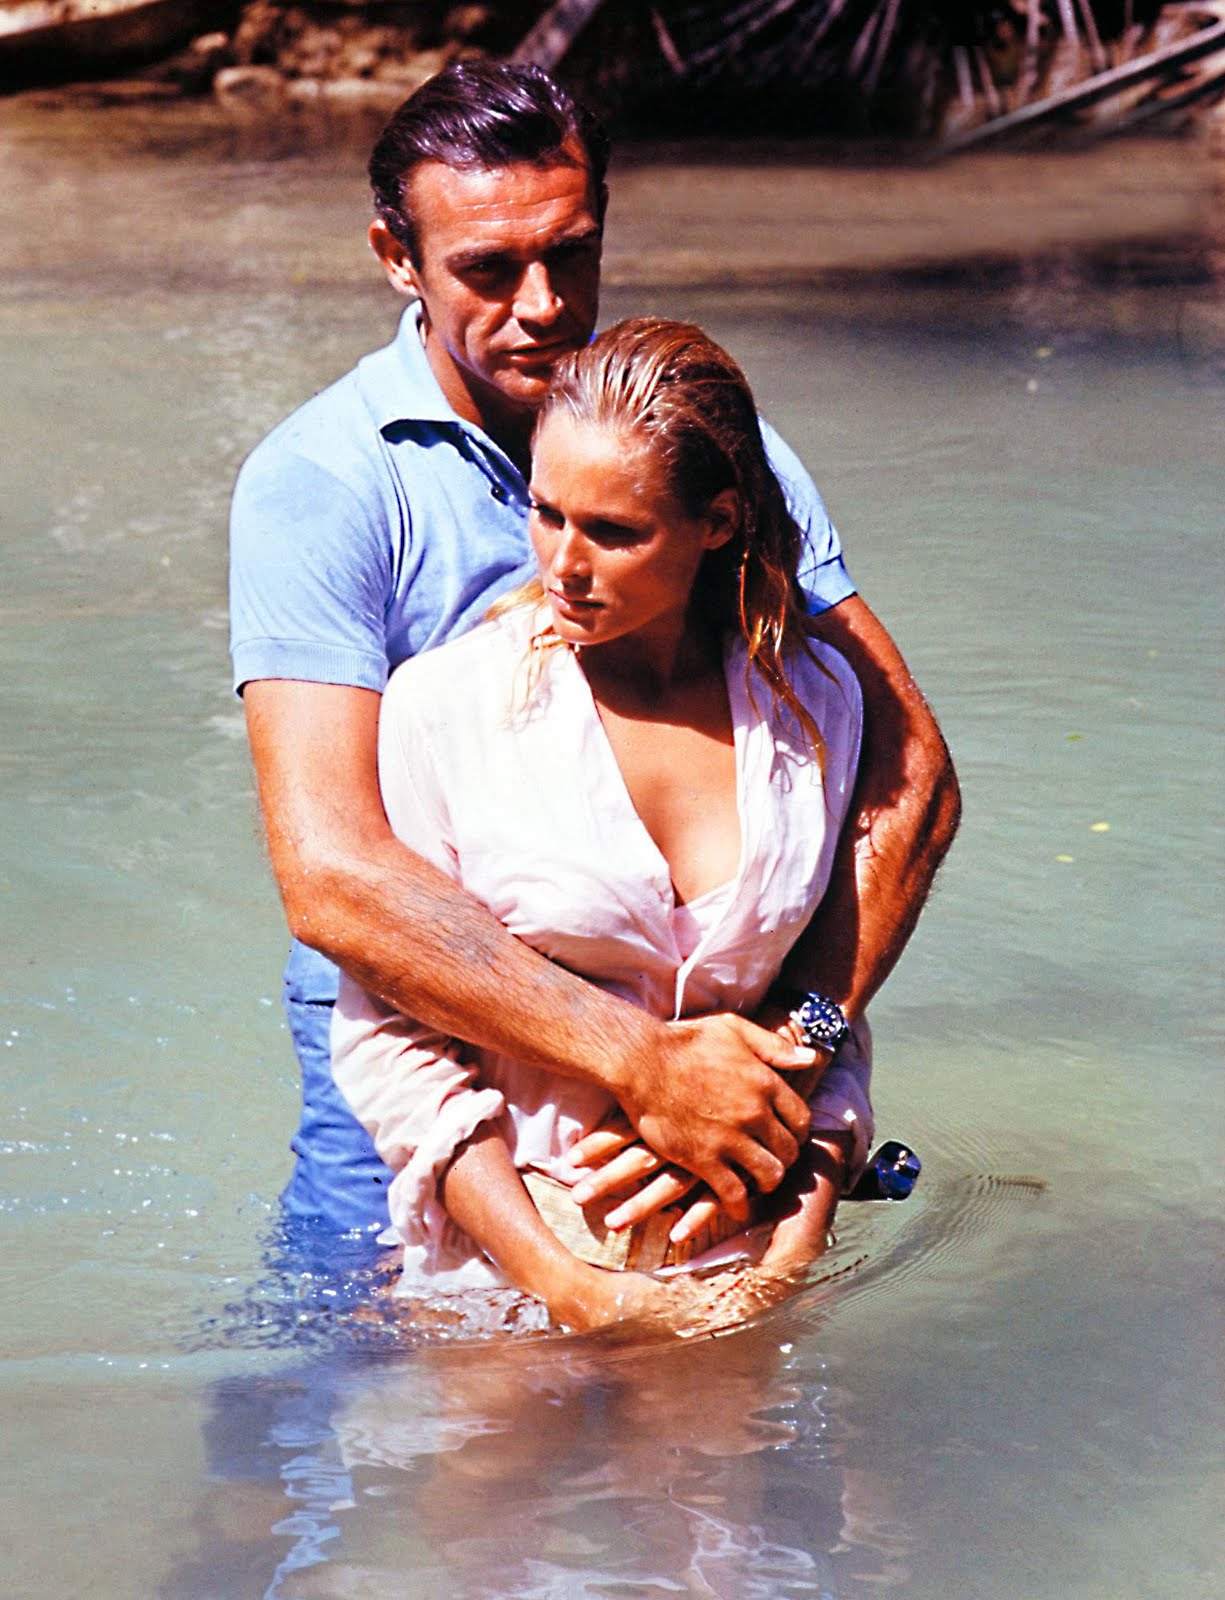 Sean-Connery-and-Ursula-Andres-Dr-No-Rolex-Submariner-Big-Crown